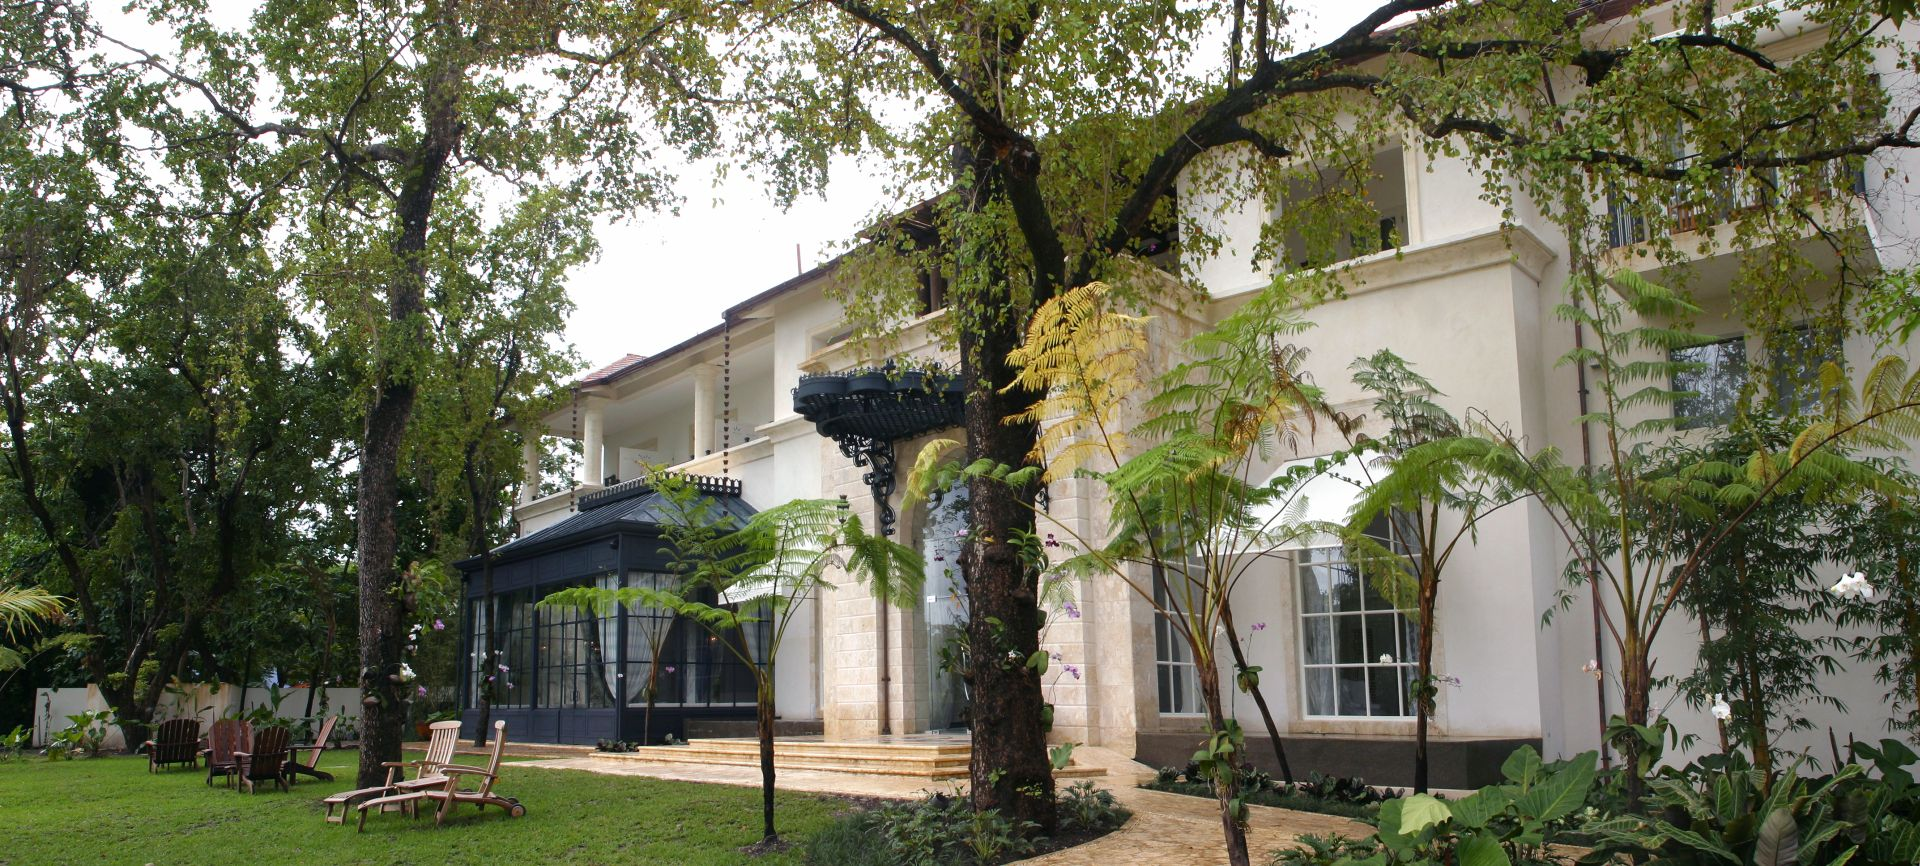 Casa colonial the dominican republic s secret best for for Small luxury hotels phoenix